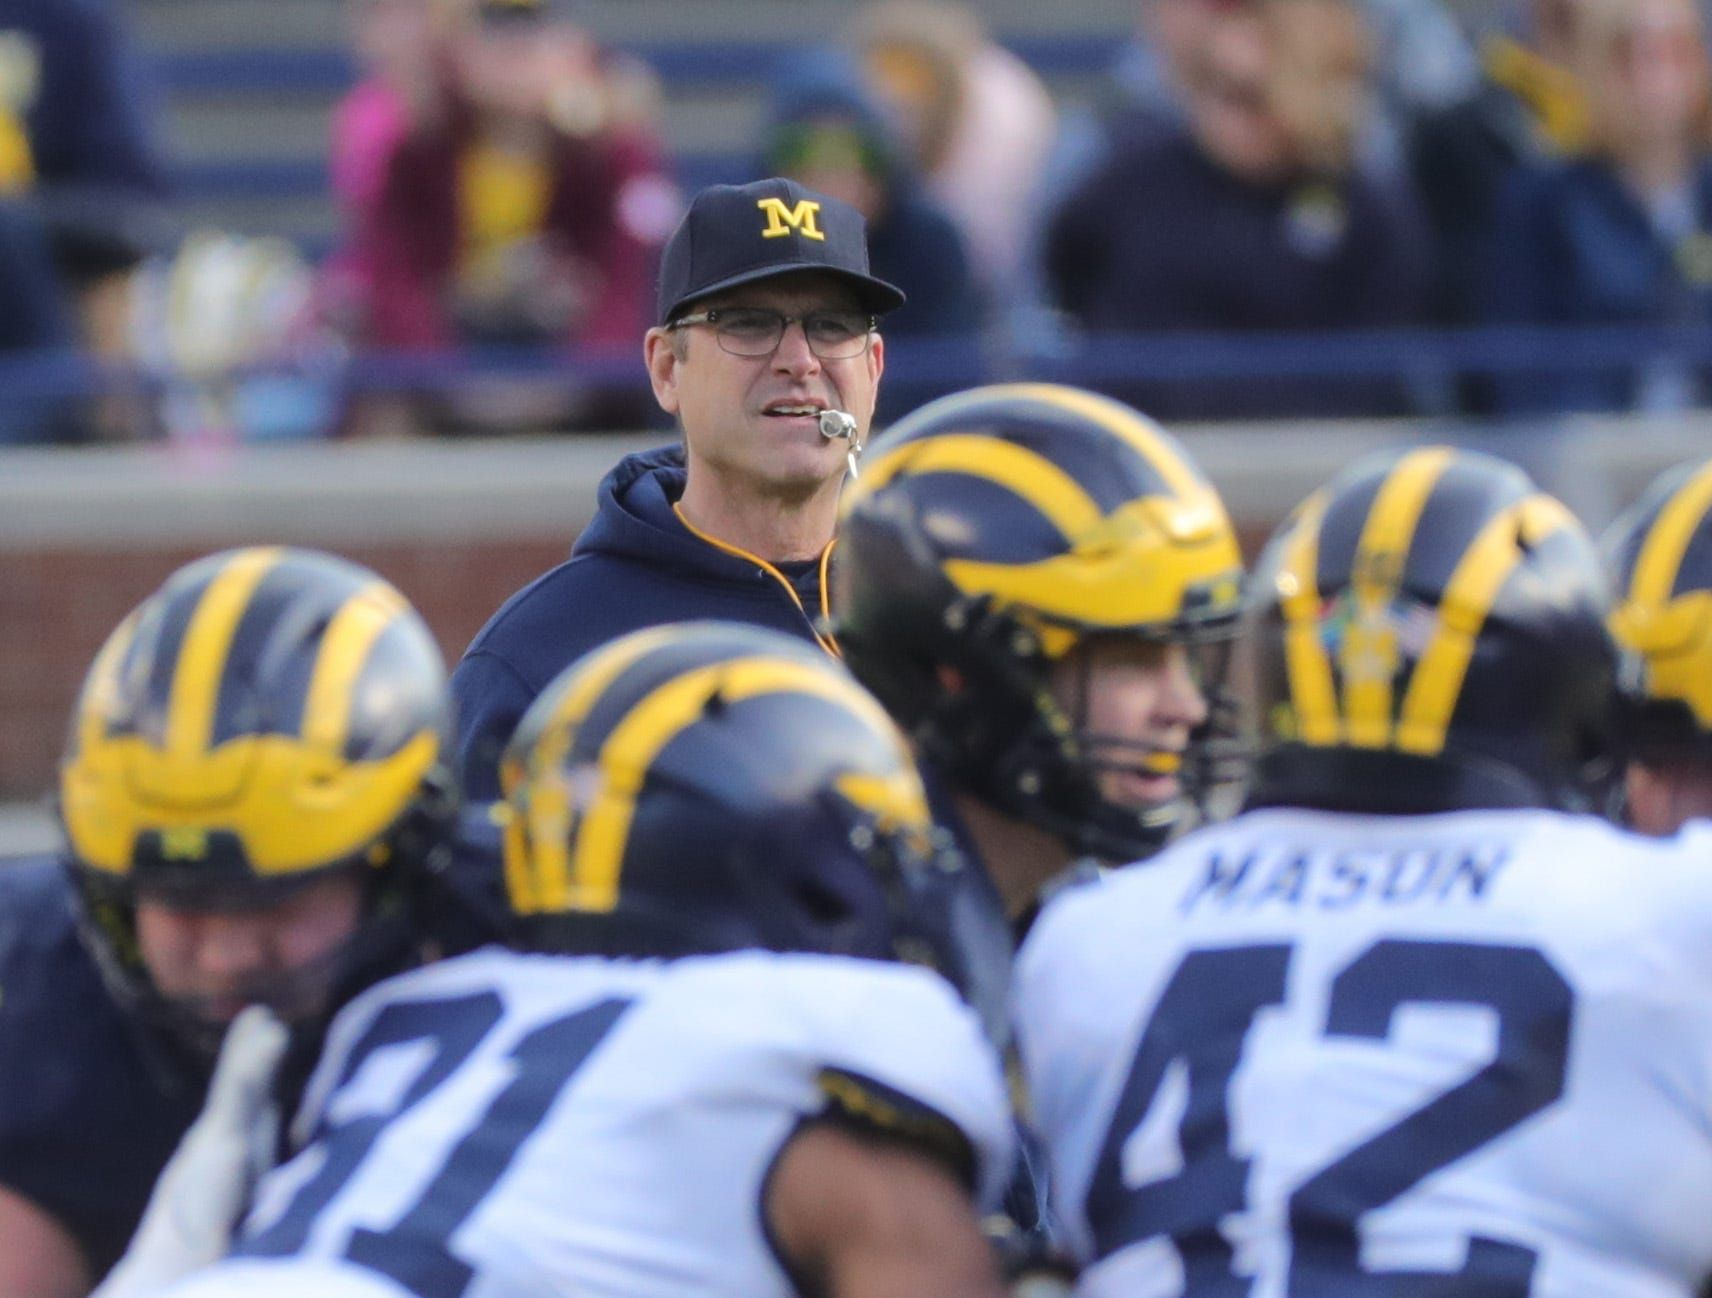 Michigan football gets commitment from 3star Ohio safety